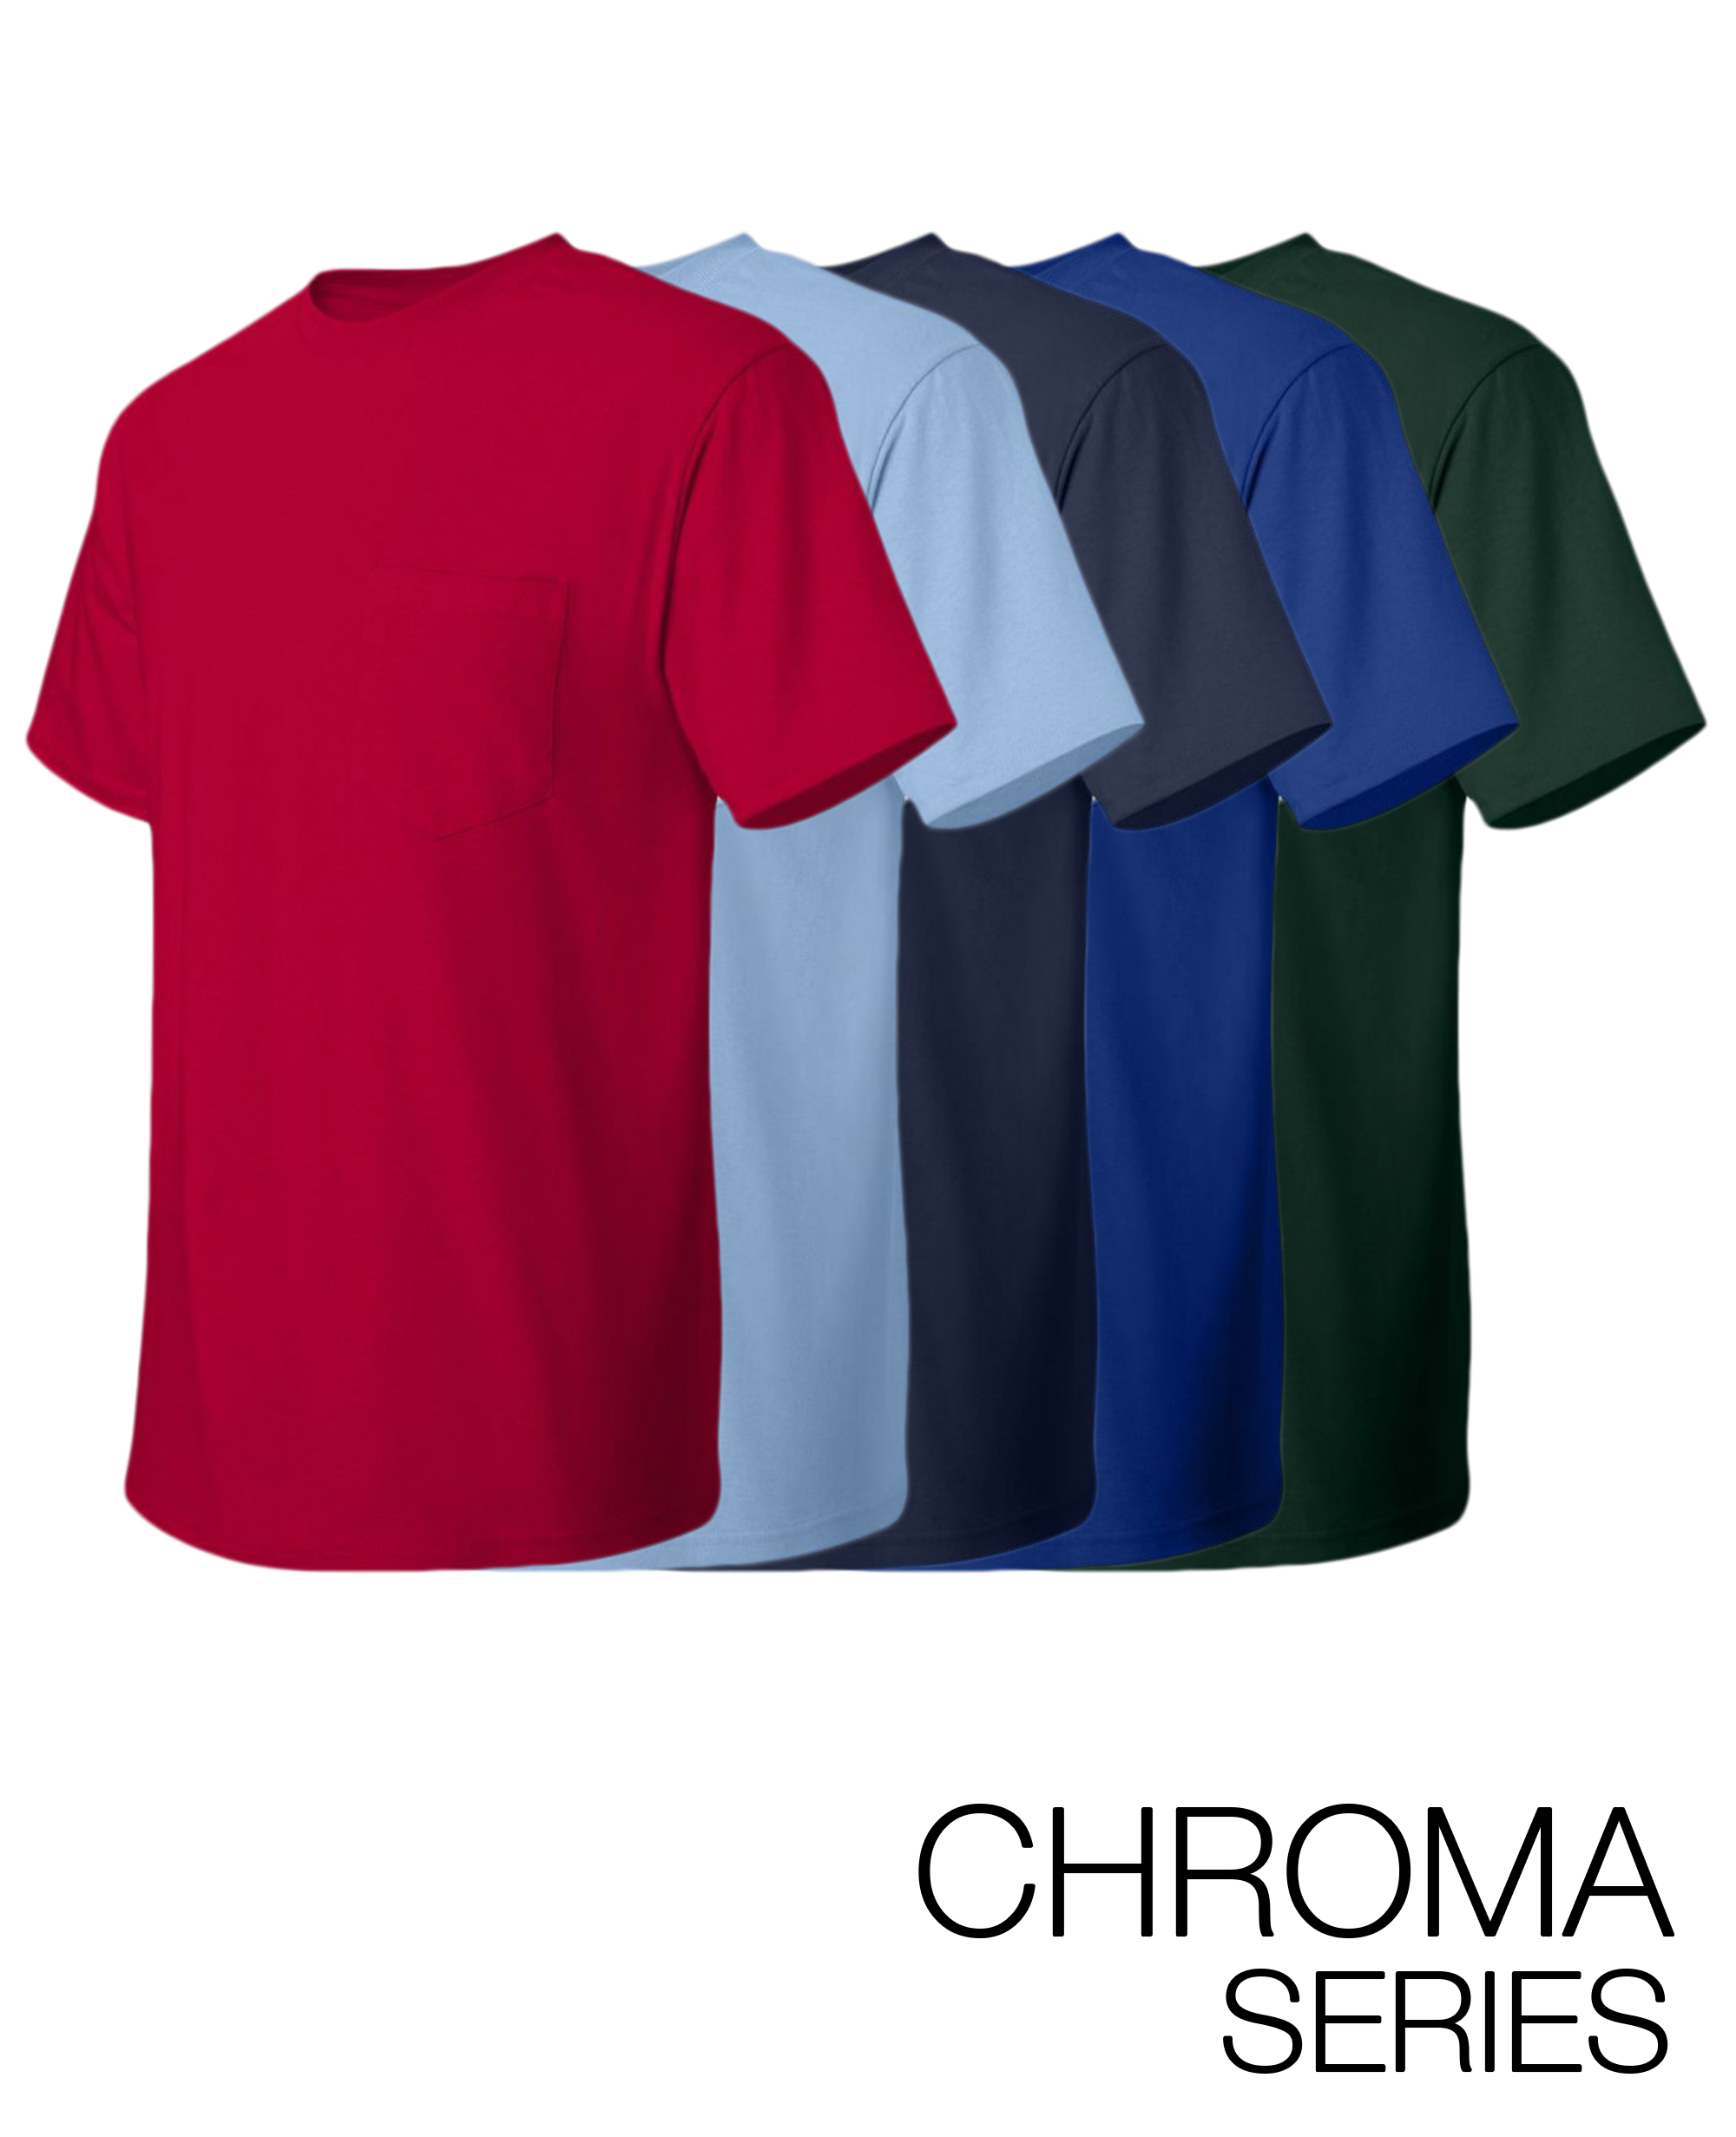 Chroma Series Heavyweight Pocket T-shirt - T-Shirts - Hanes - BRANMA